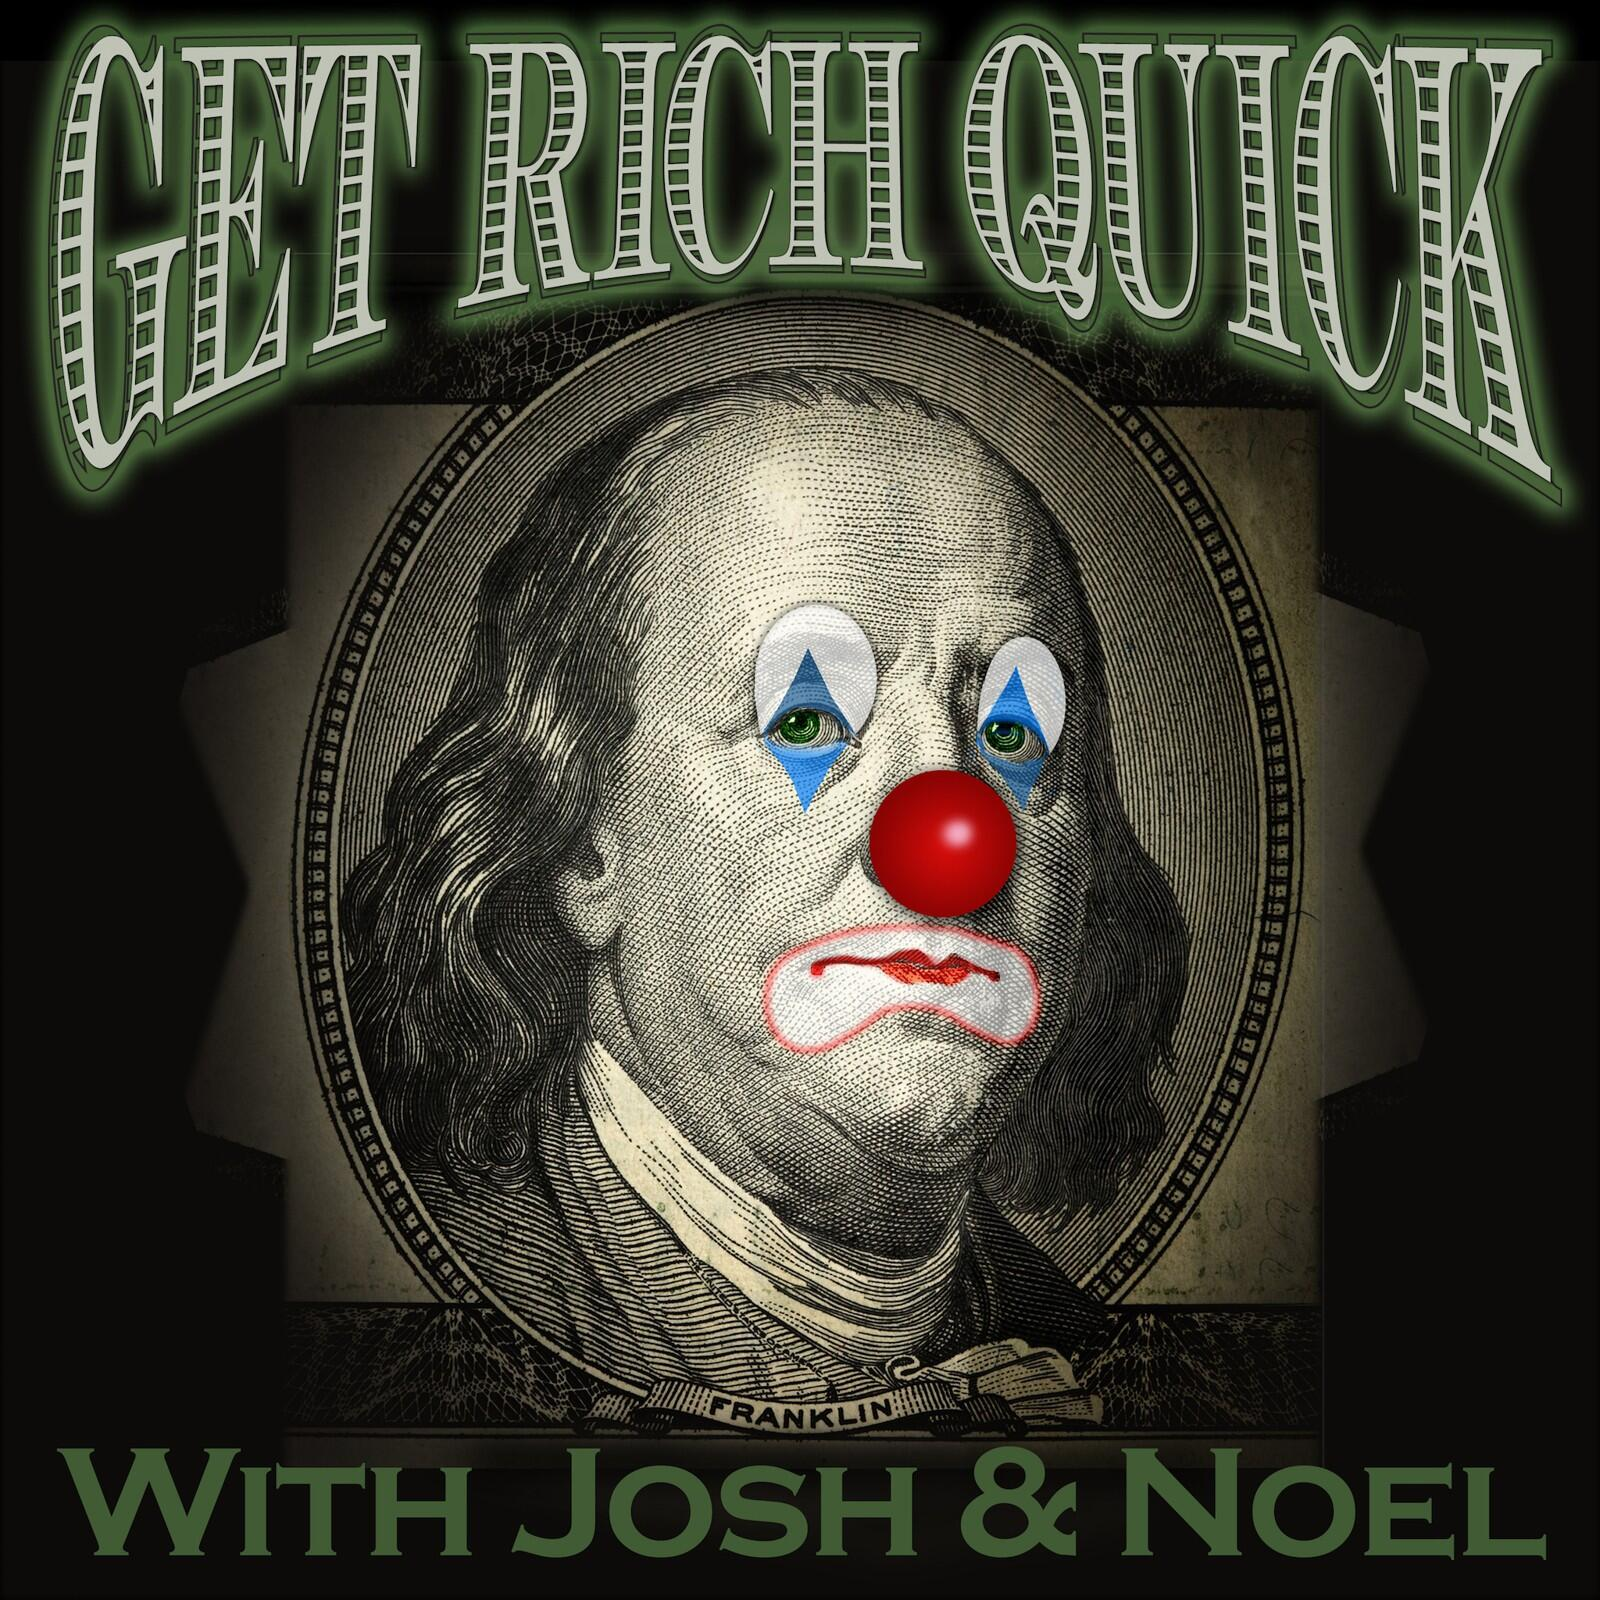 Get Rich Quick with Josh & Noel